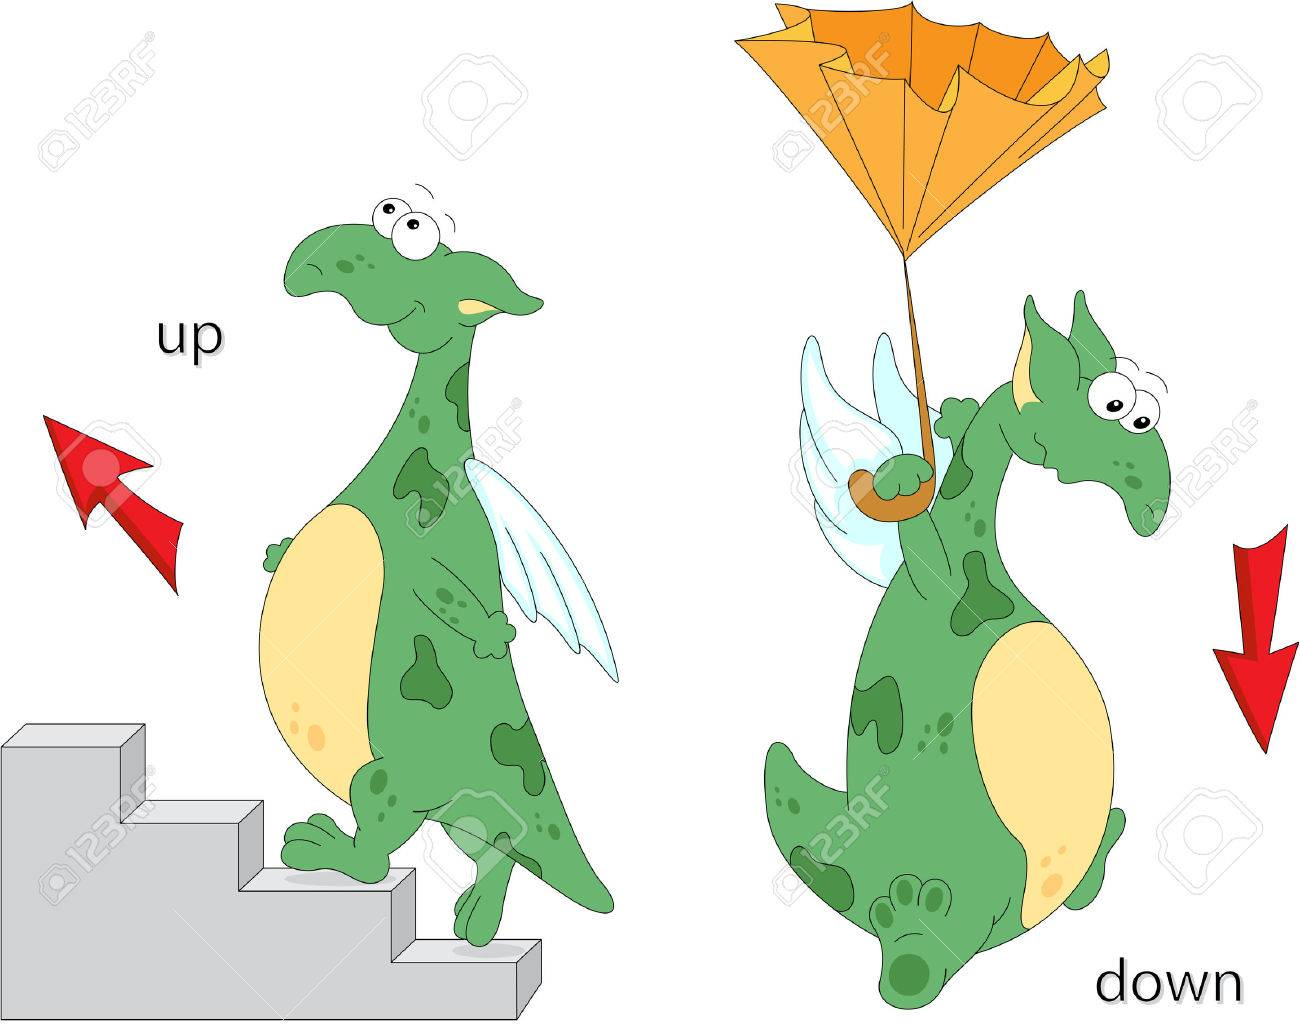 Cartoon Dragon Goes Up The Stairs And Flies Down With An Umbrella English Grammar In